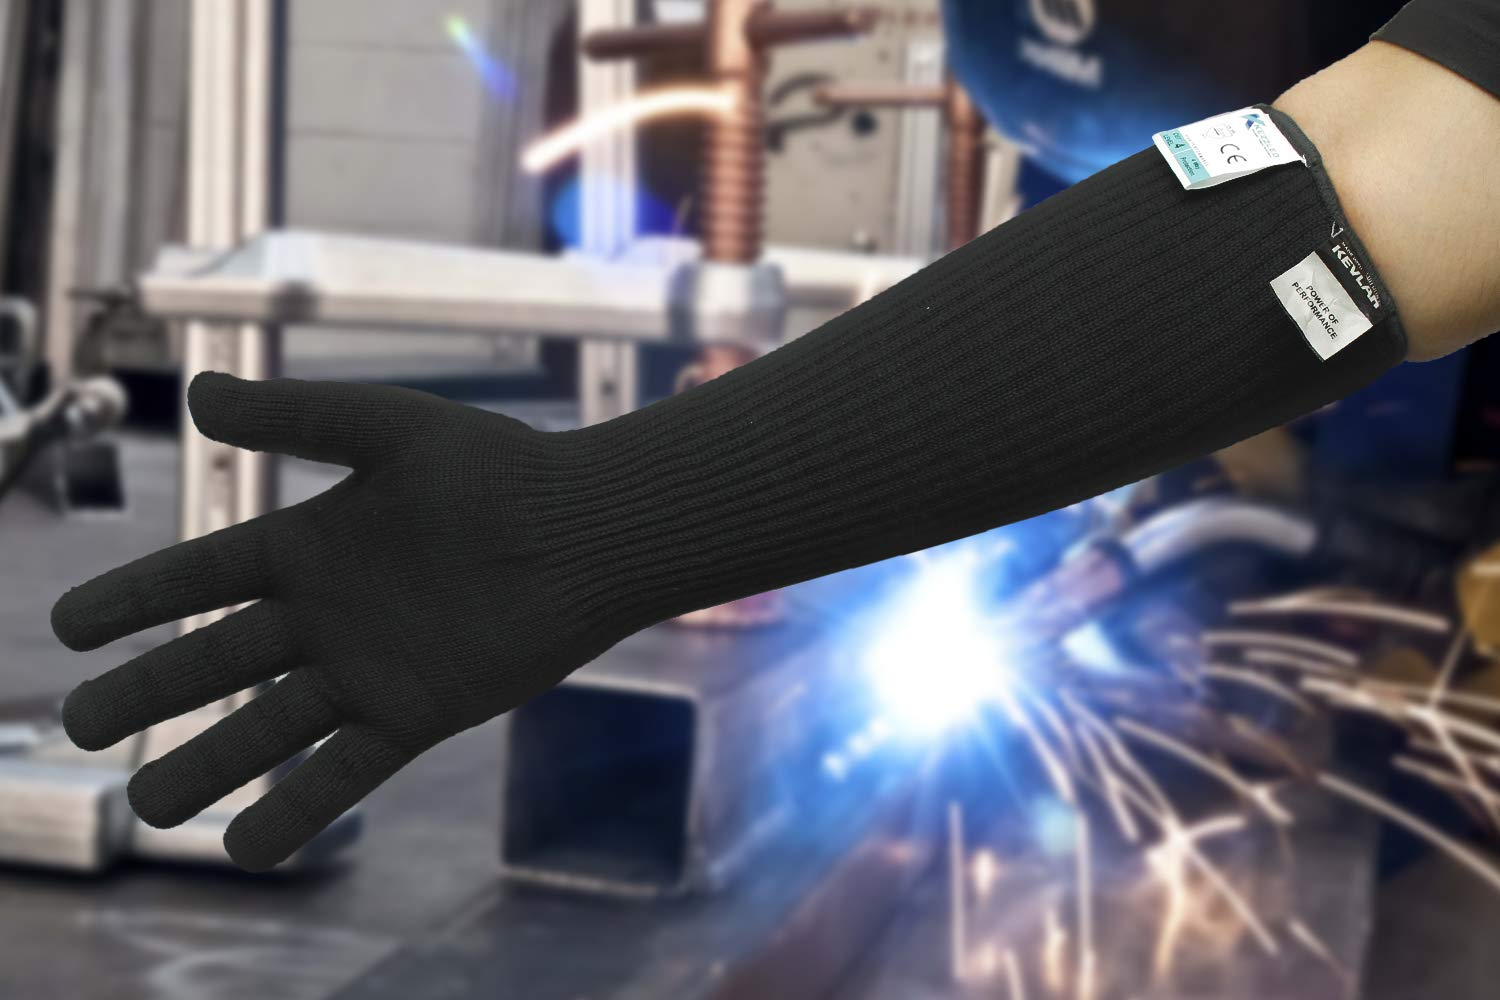 Cut/Scratch/Heat Resistance Designer Glove with Extended Arm Sleeve- Black (Made with Kevlar by DuPont) by KEZZLED (Image #5)